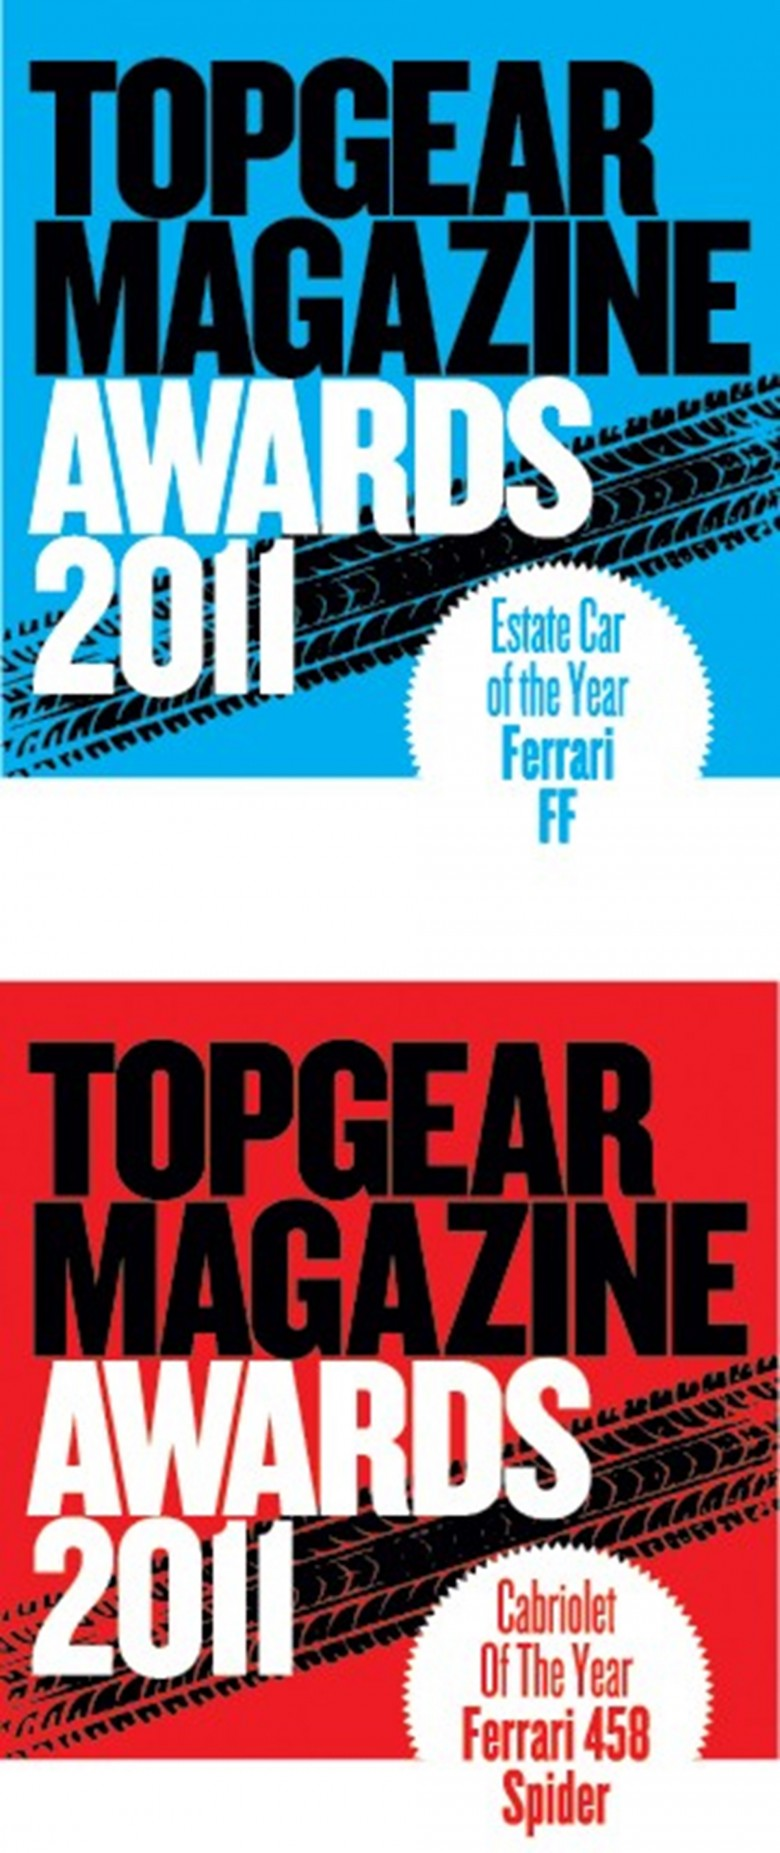 Ferrari receives two awards from BBC Top Gear Magazine